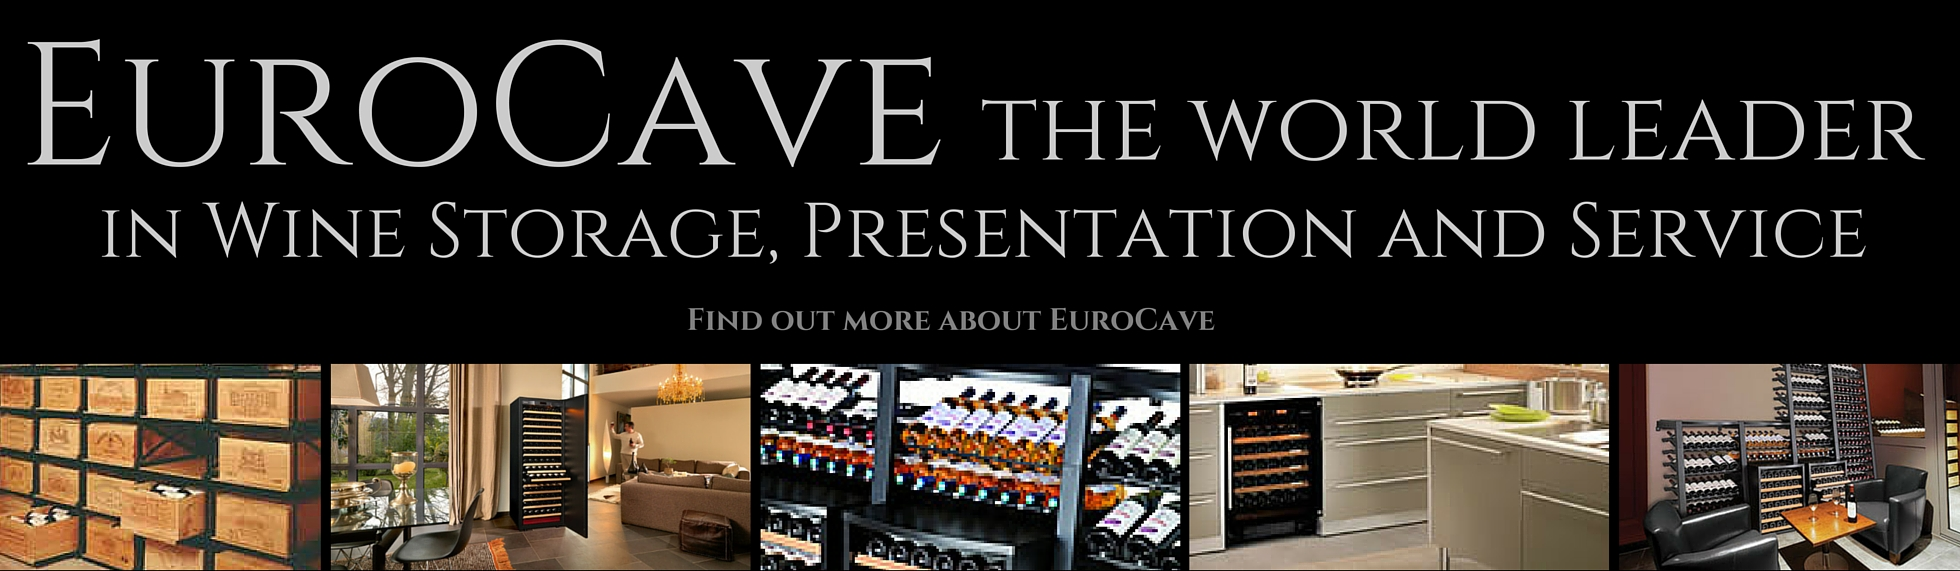 Eurocave Shelves | Costco Wine Cellars | Eurocave